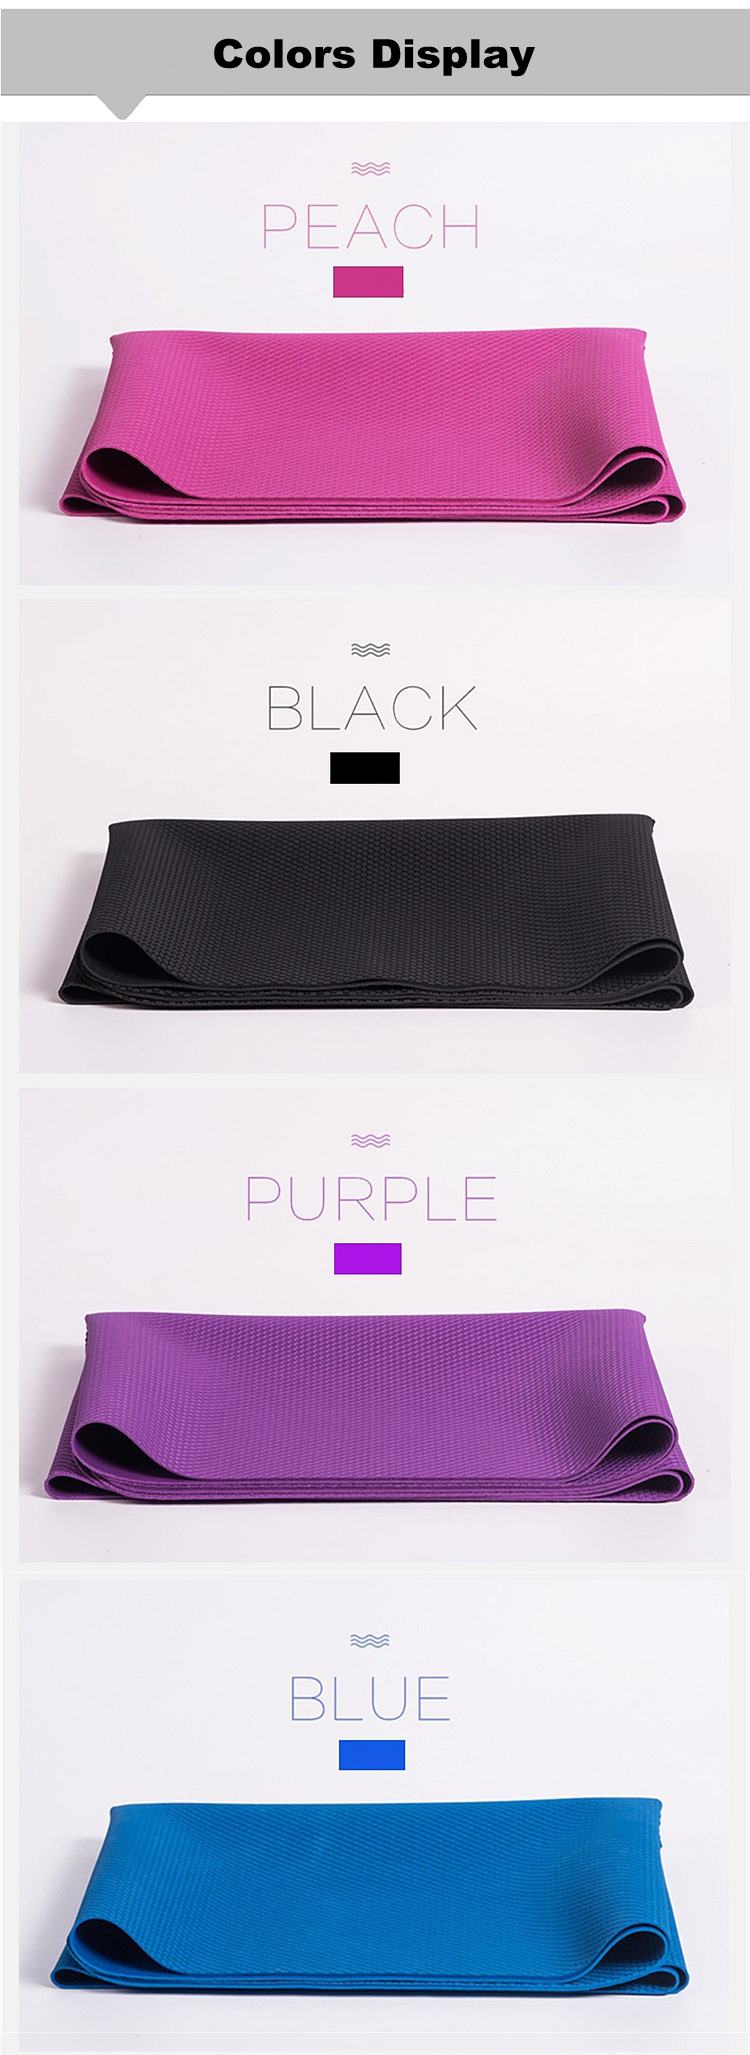 Hot New Products 1.5mm thickness rubber yoga mat with two sided pattern